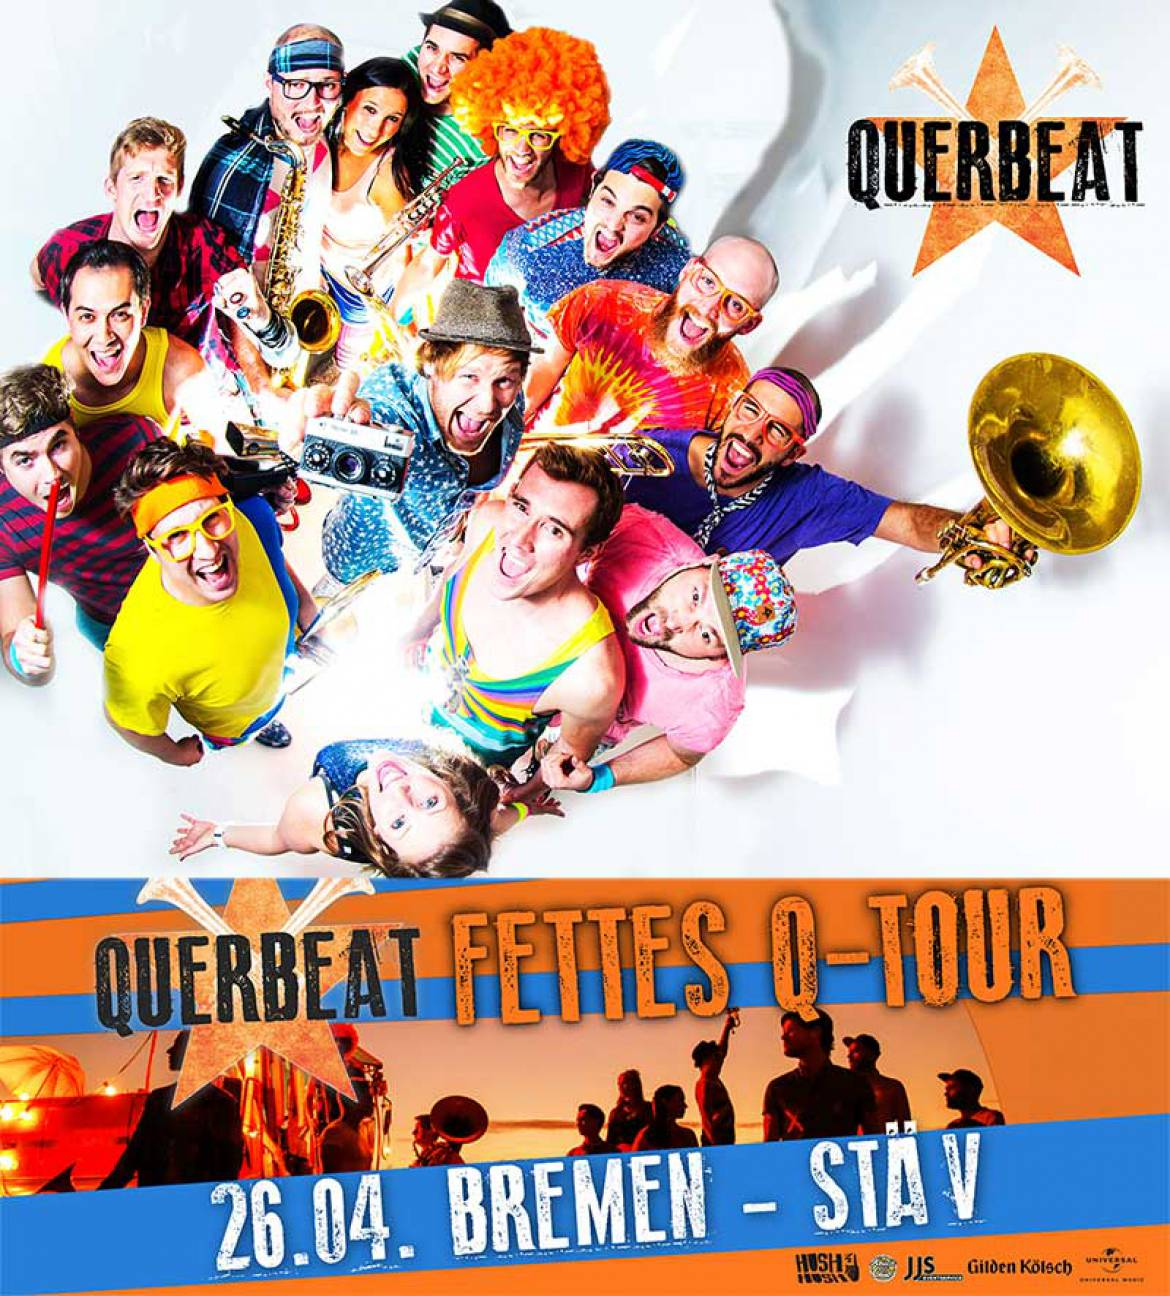 Querbeat am 26.04.2017 in der StäV Bremen